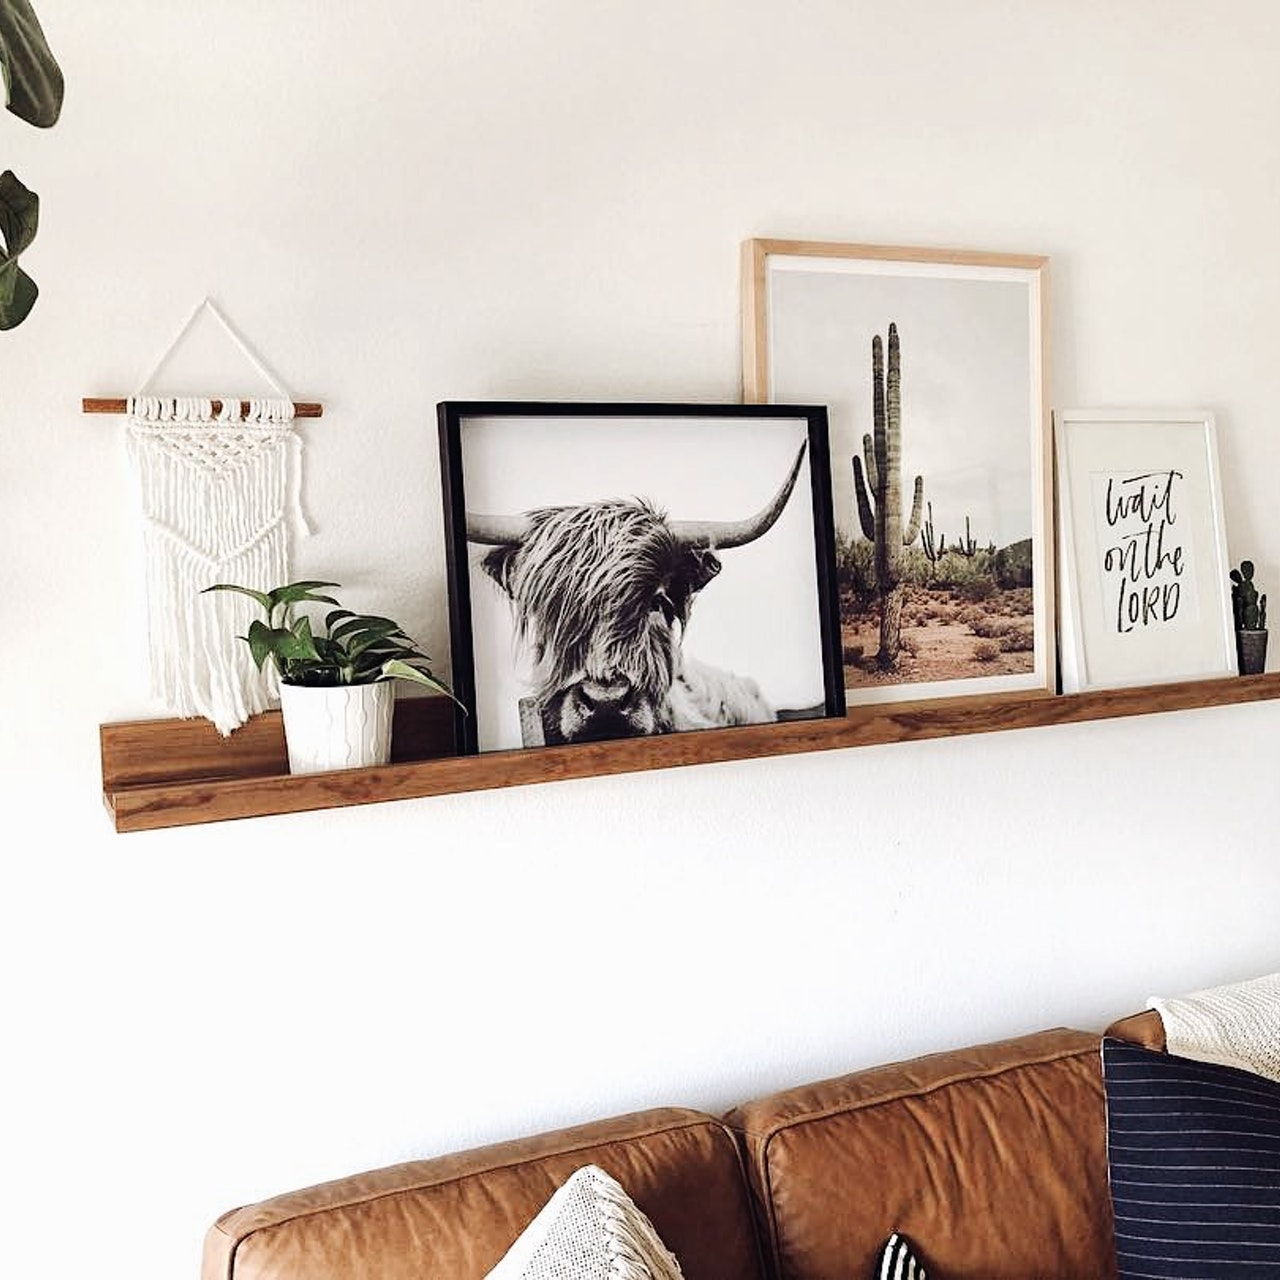 Trendy wall decoration poster with bison